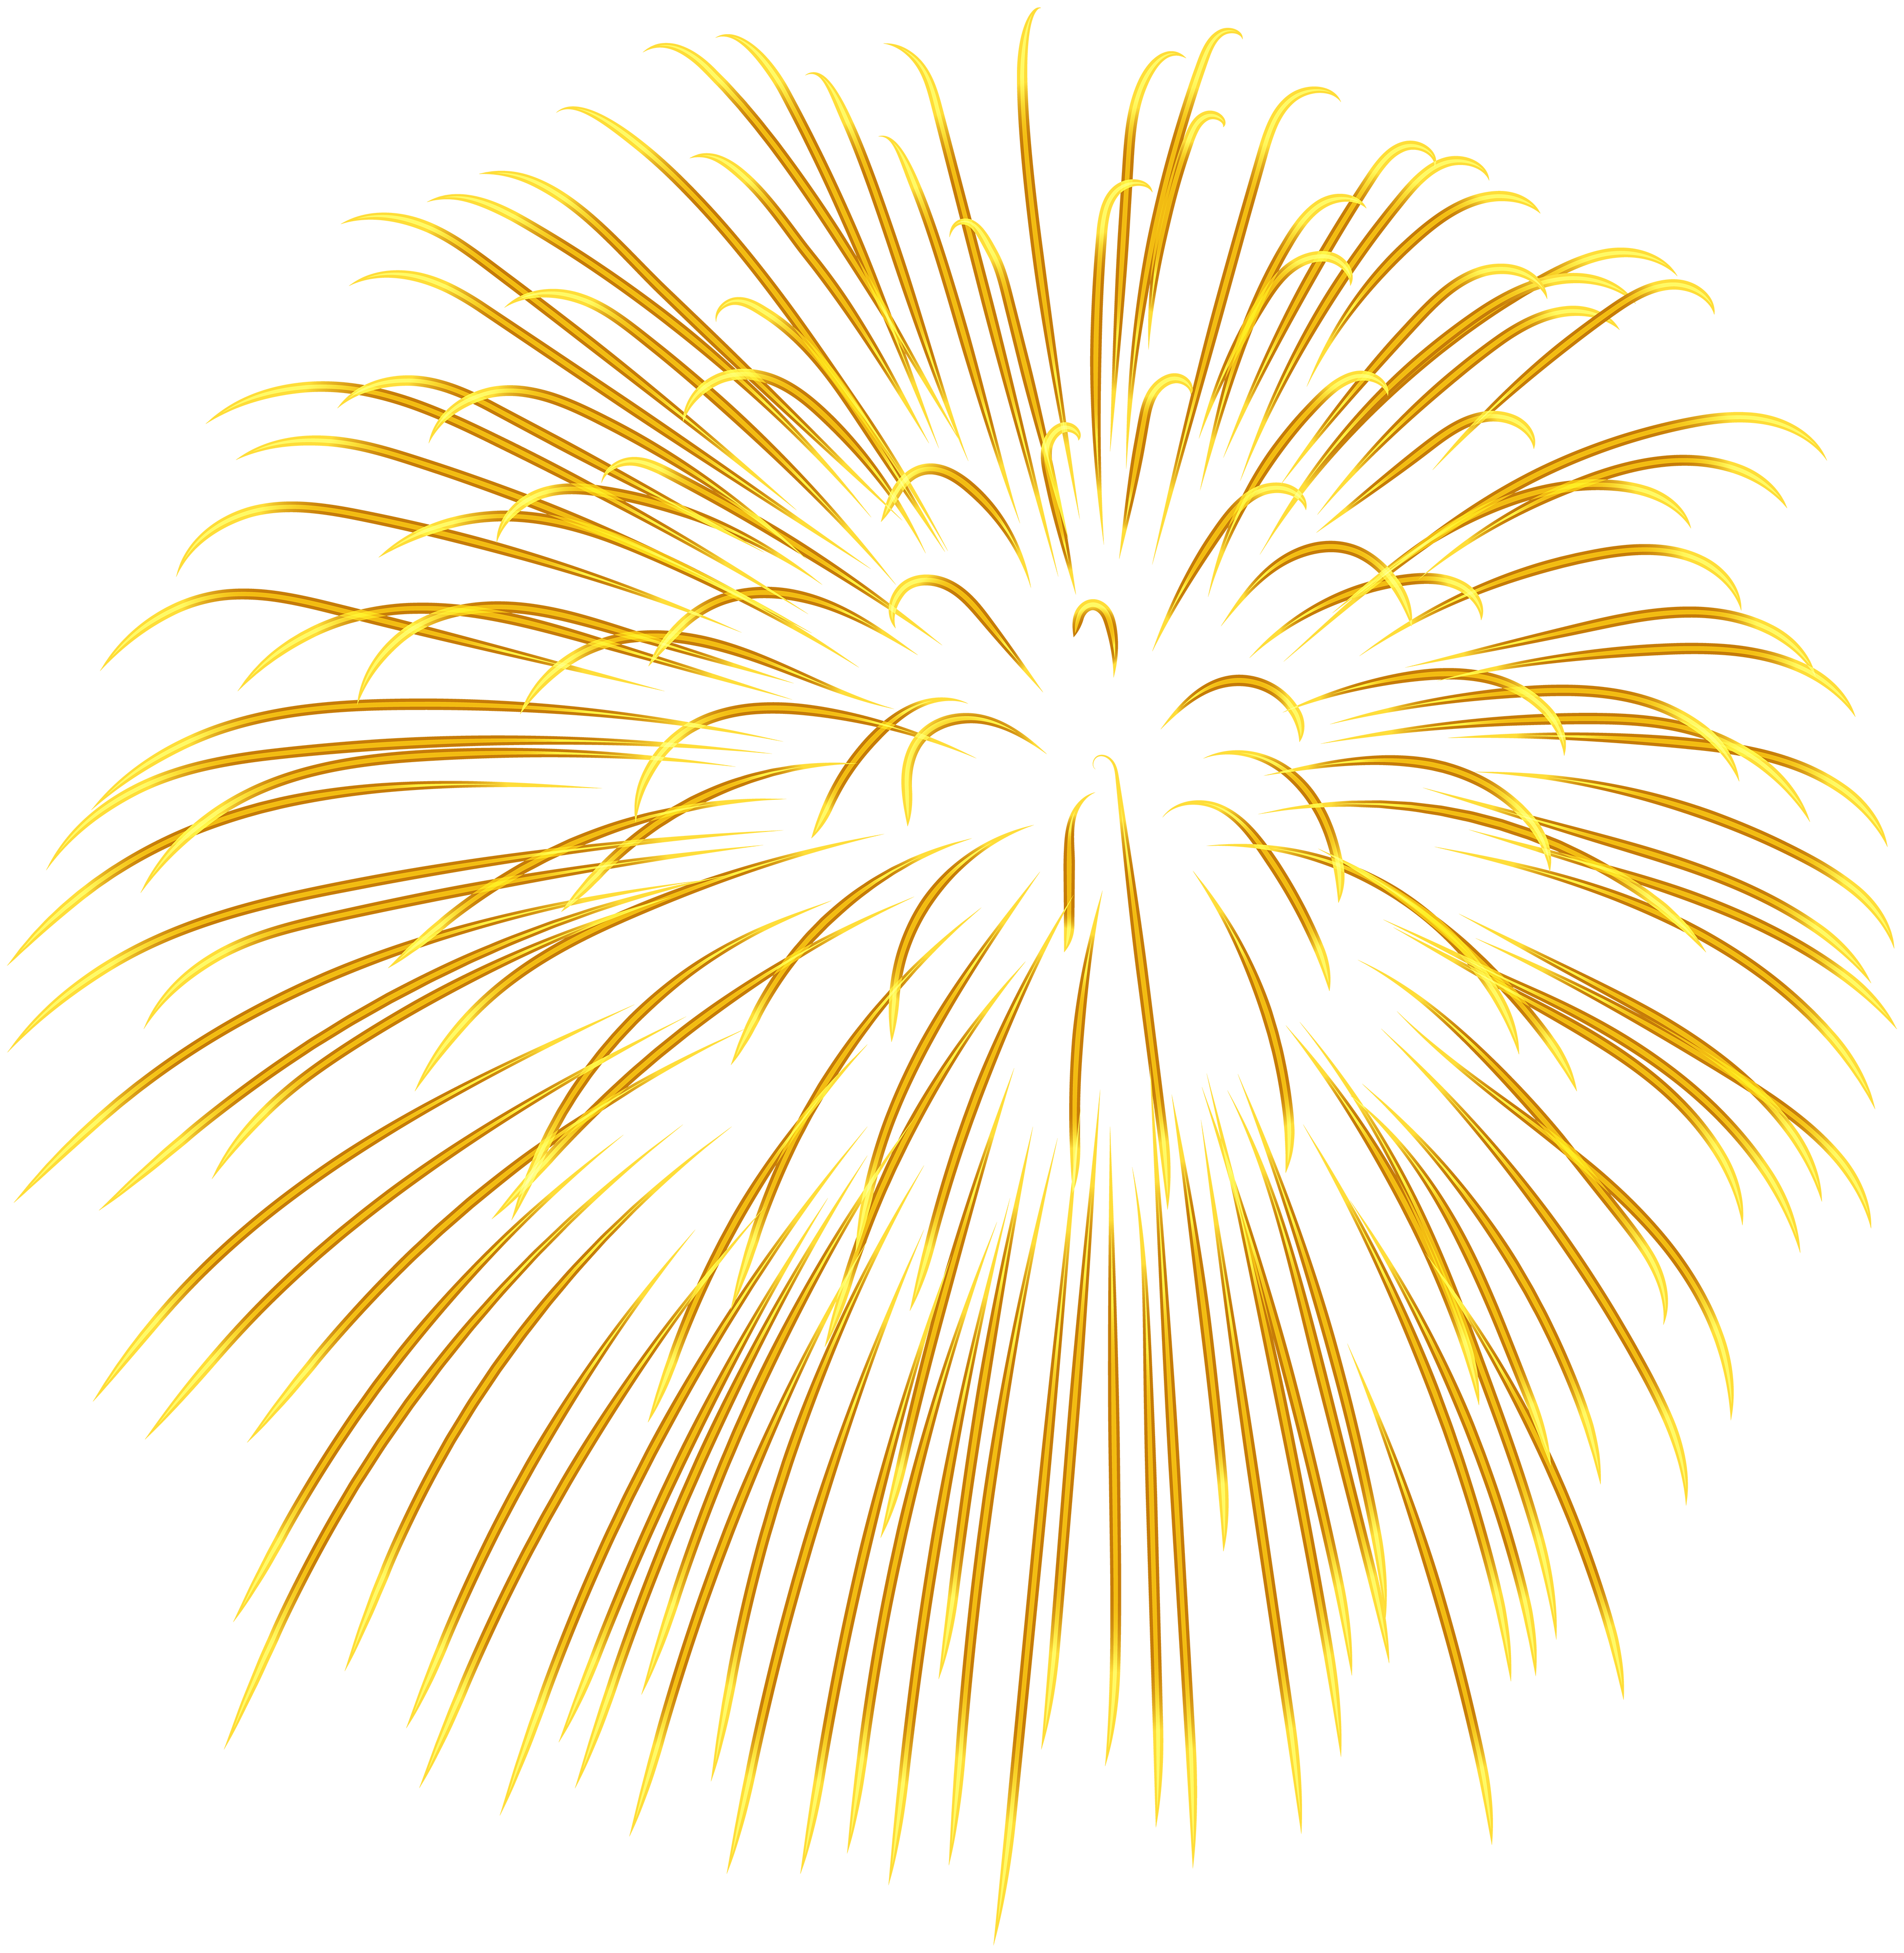 Yellow transparent png image. Firework star clipart